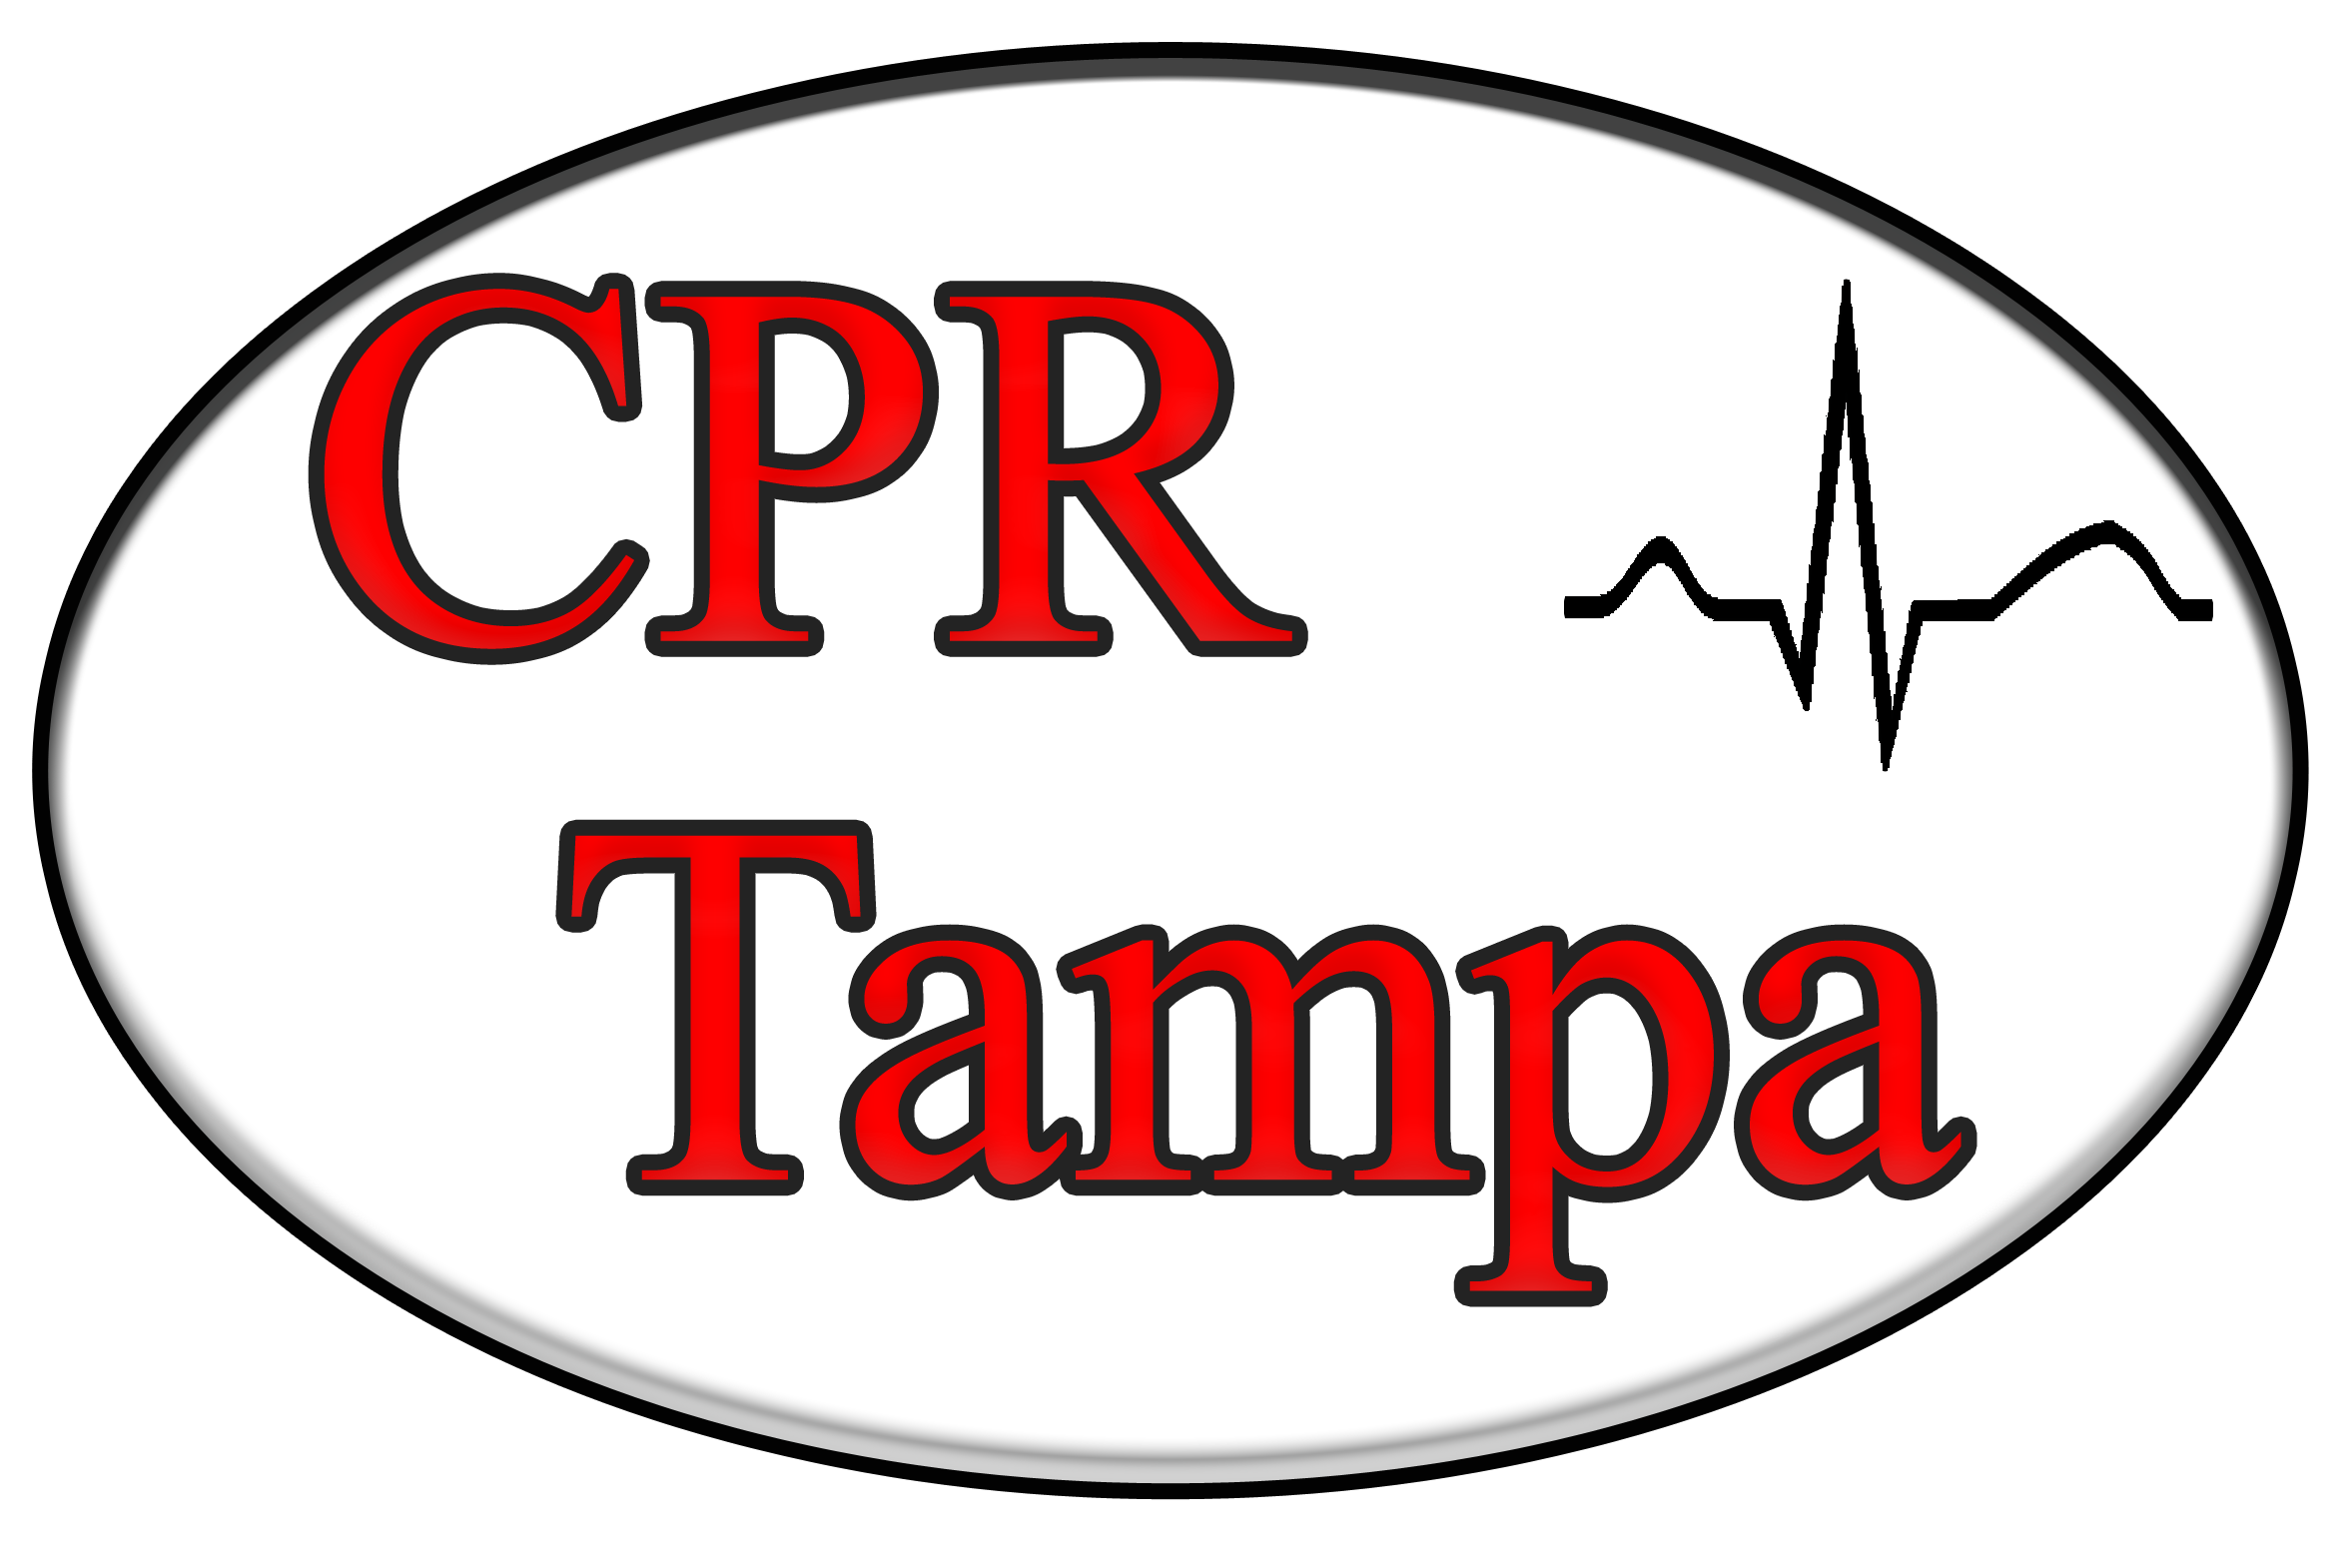 Cpr tampa about us american heart association cpr tampa logo 1betcityfo Gallery